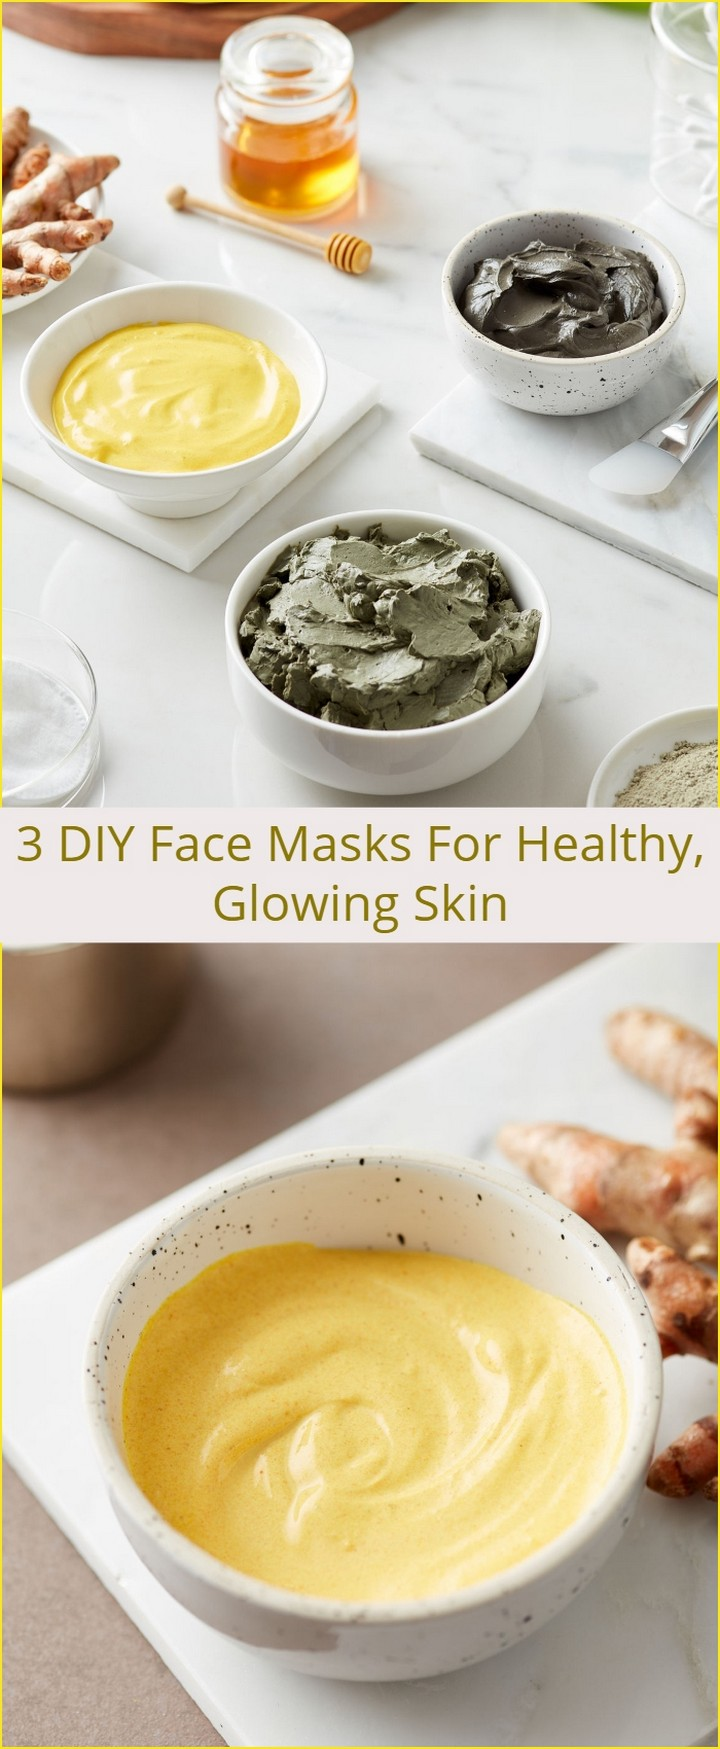 3 DIY Face Masks For Healthy Glowing Skin 1